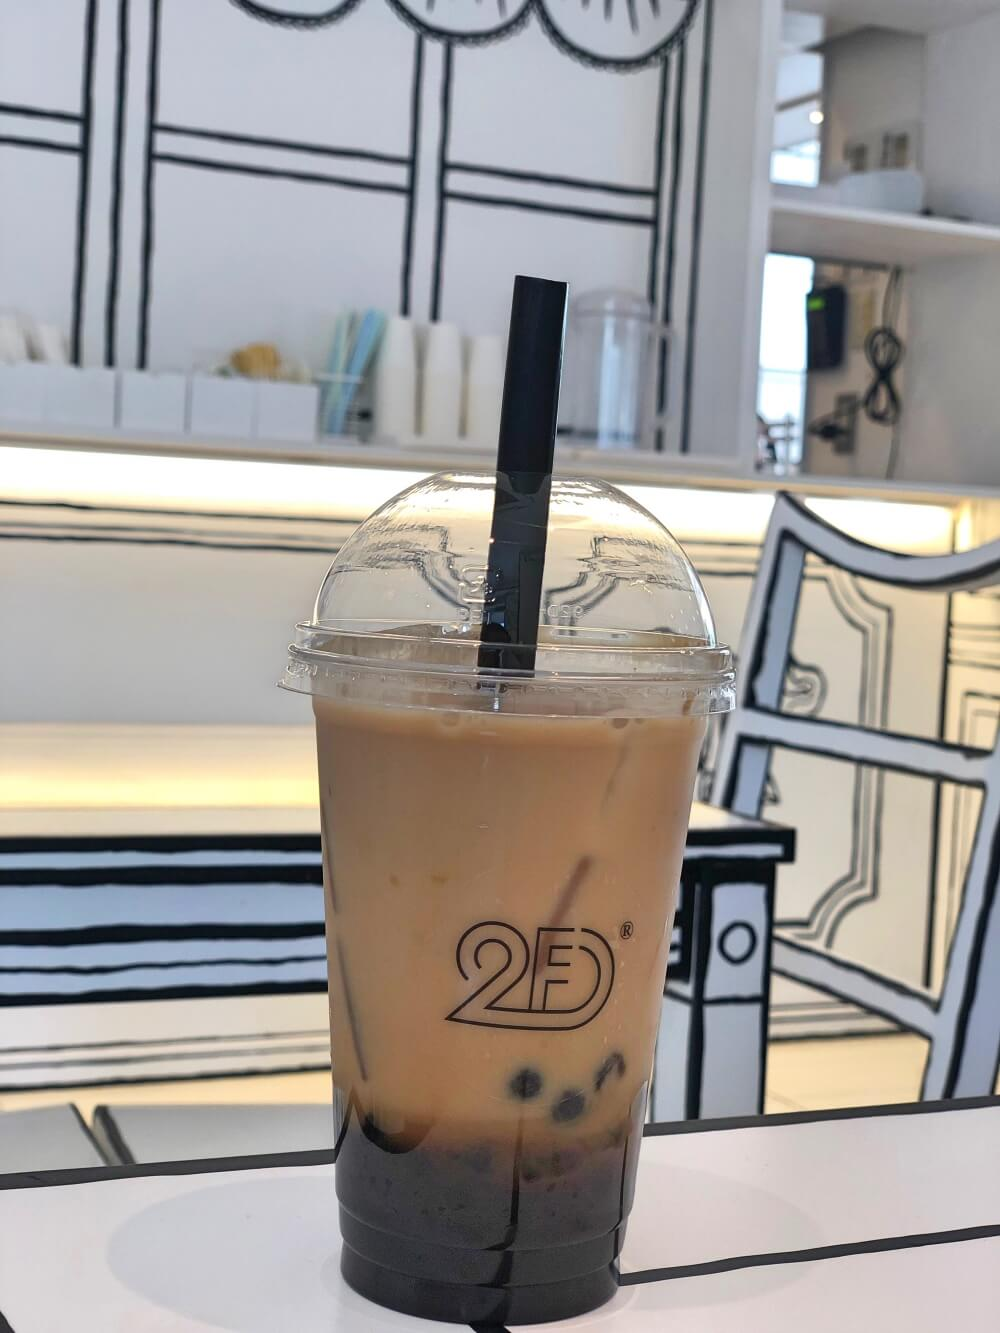 2D Cafe - The Newest Instagramable Tapioca Cafe in Tokyo